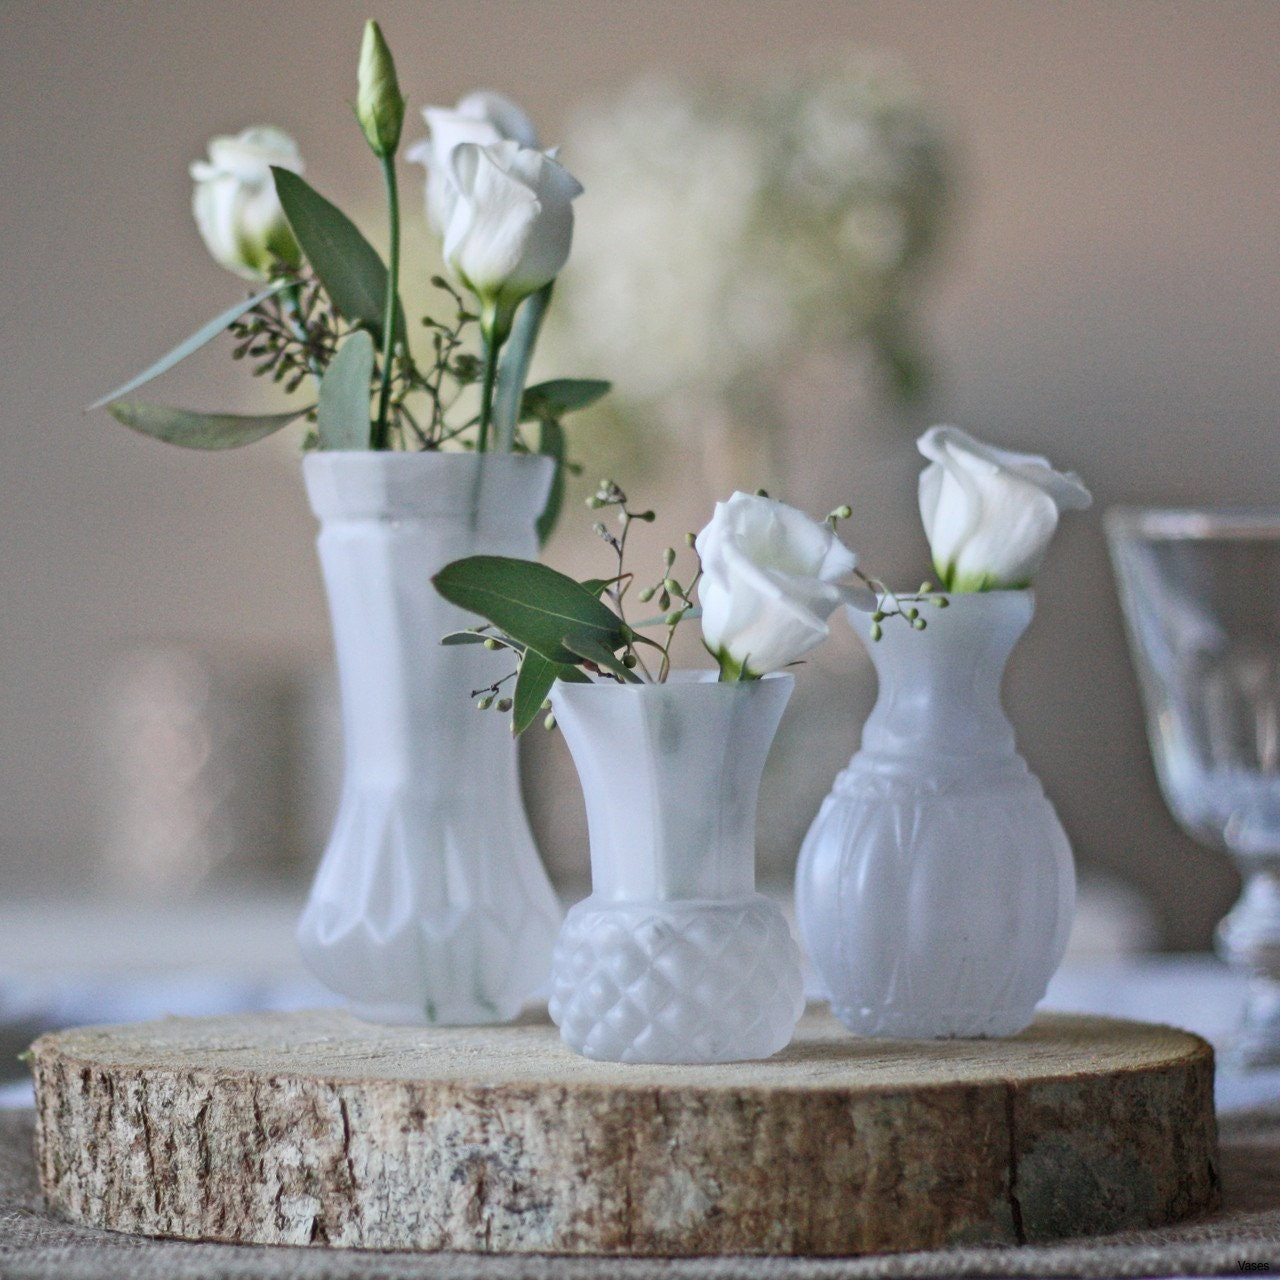 tall clear flower vases wedding of crystal vase centerpieces photos jar flower 1h vases bud wedding pertaining to crystal vase centerpieces photos jar flower 1h vases bud wedding vase centerpiece idea i 0d white